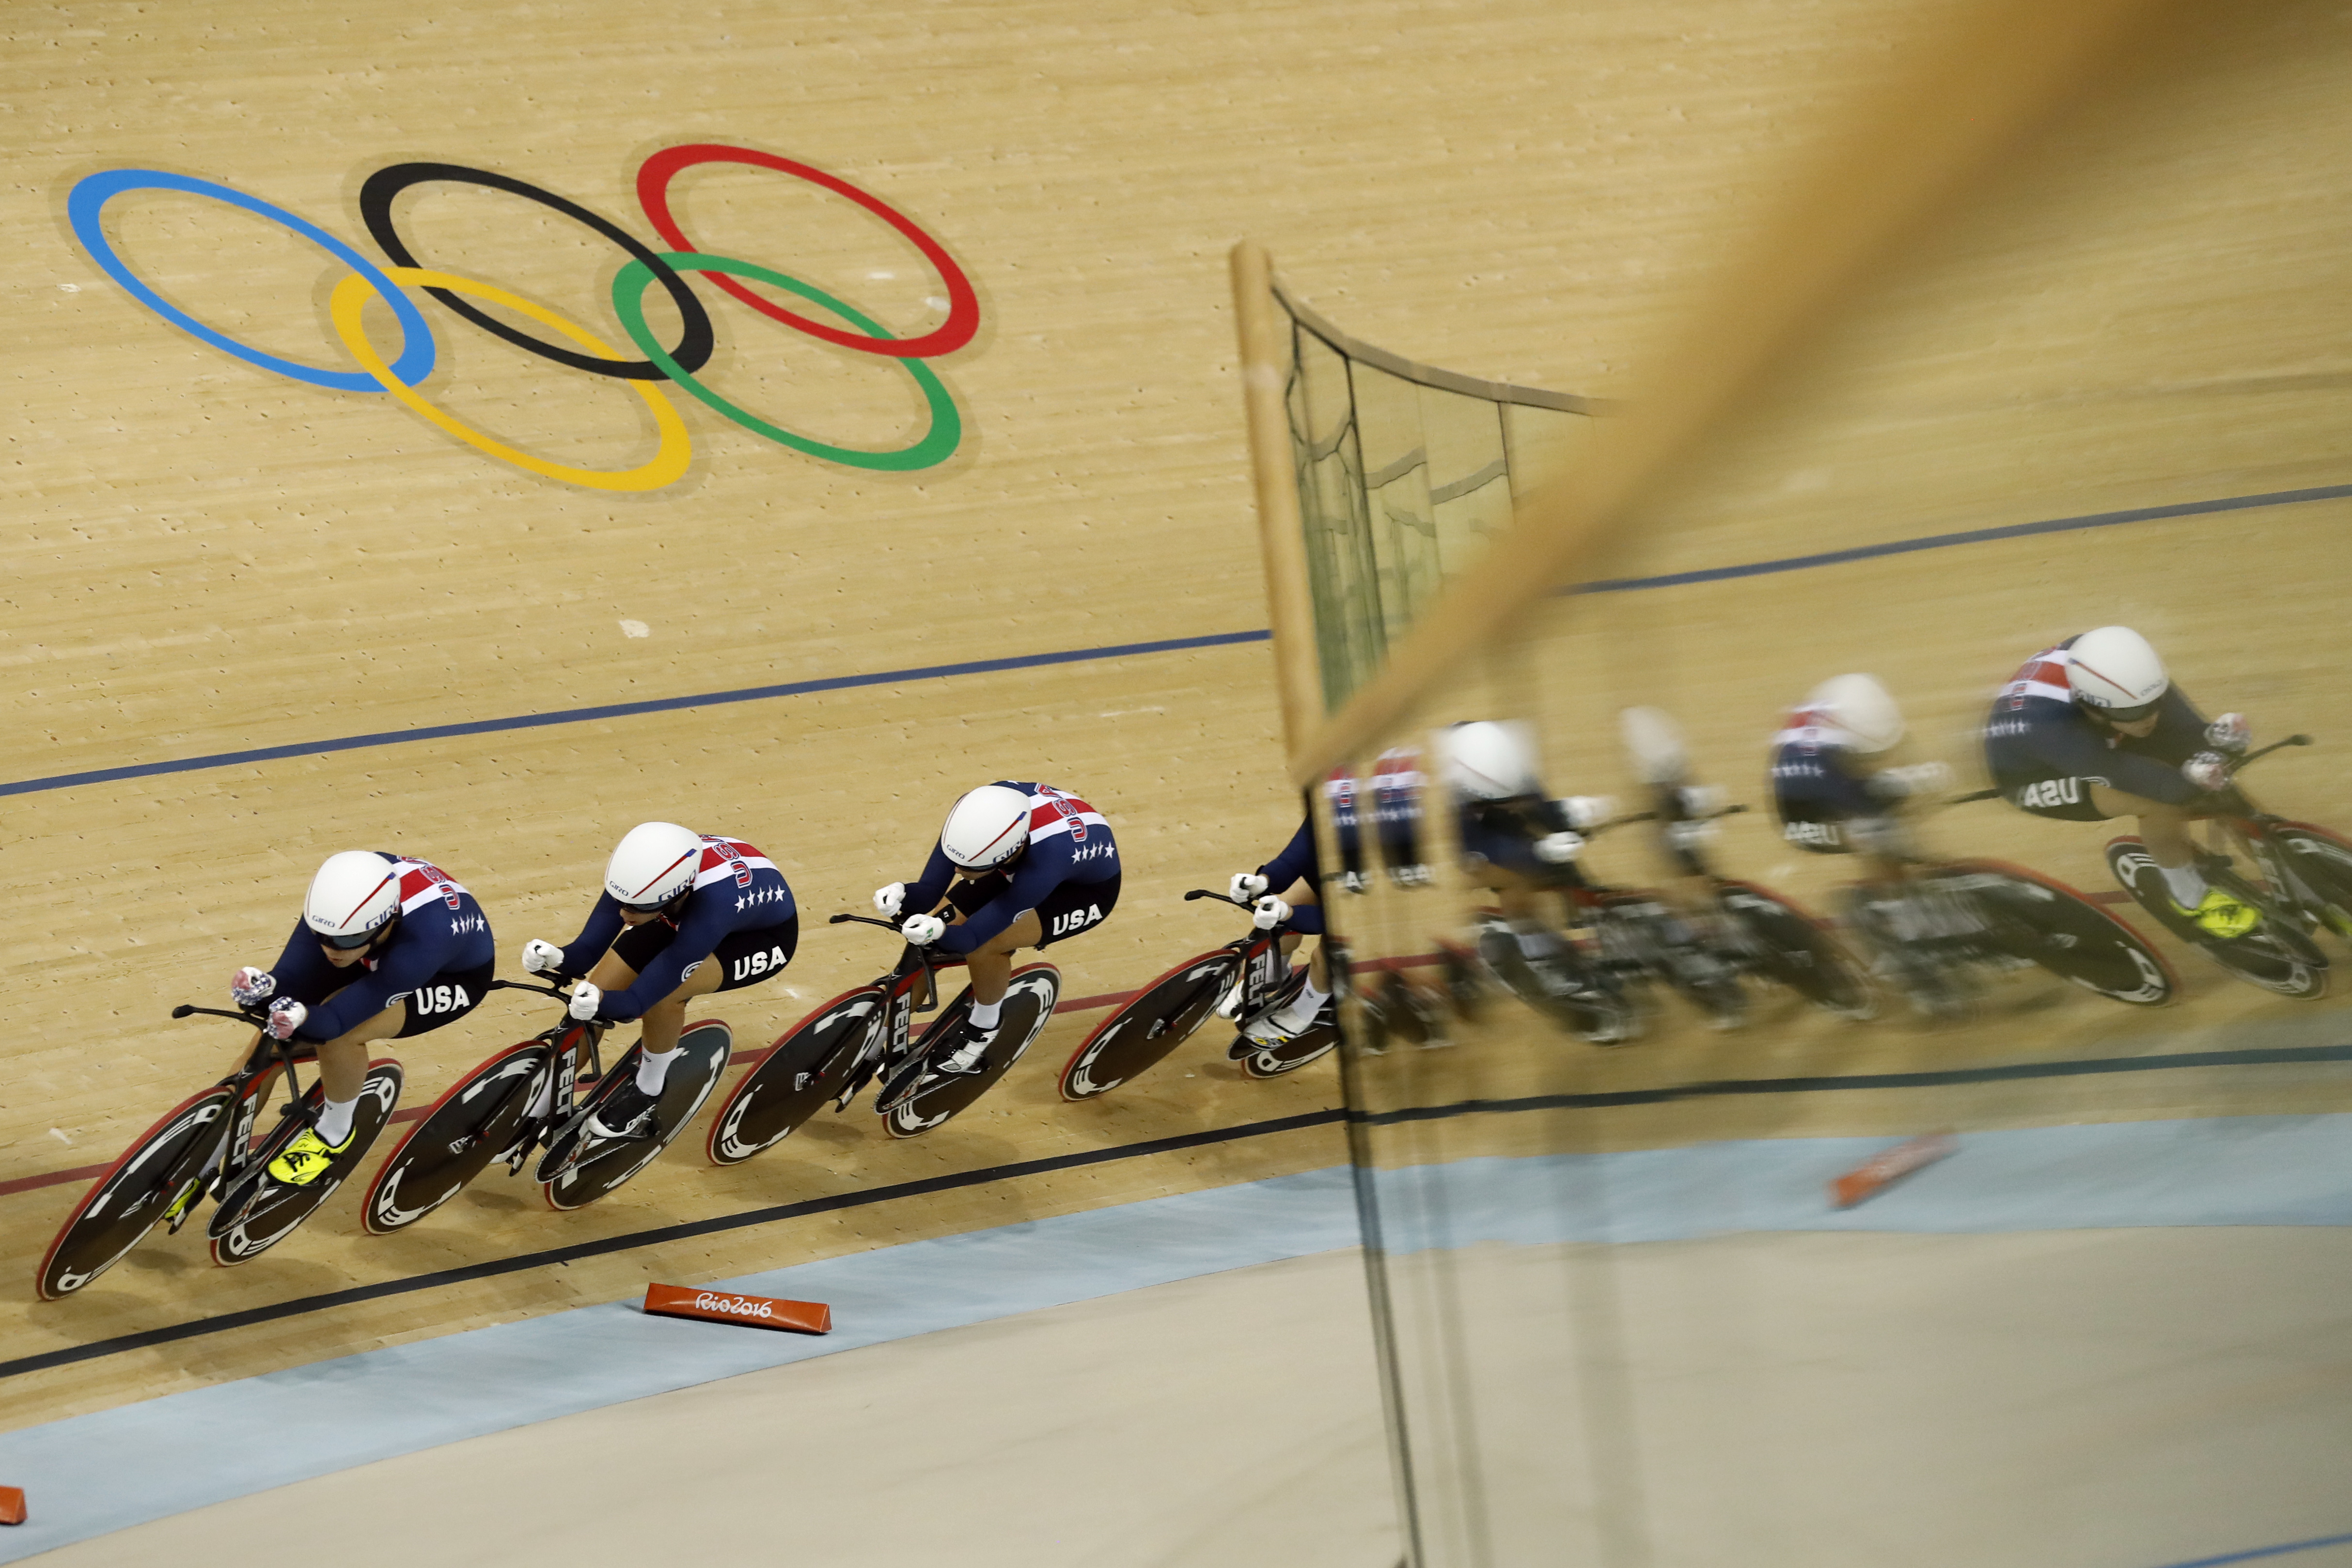 United States' team competes in the women's team pursuit first round at the Rio Olympic Velodrome during the 2016 Summer Olympics in Rio de Janeiro, Brazil, Saturday, Aug. 13, 2016. (AP Photo/Patrick Semansky)